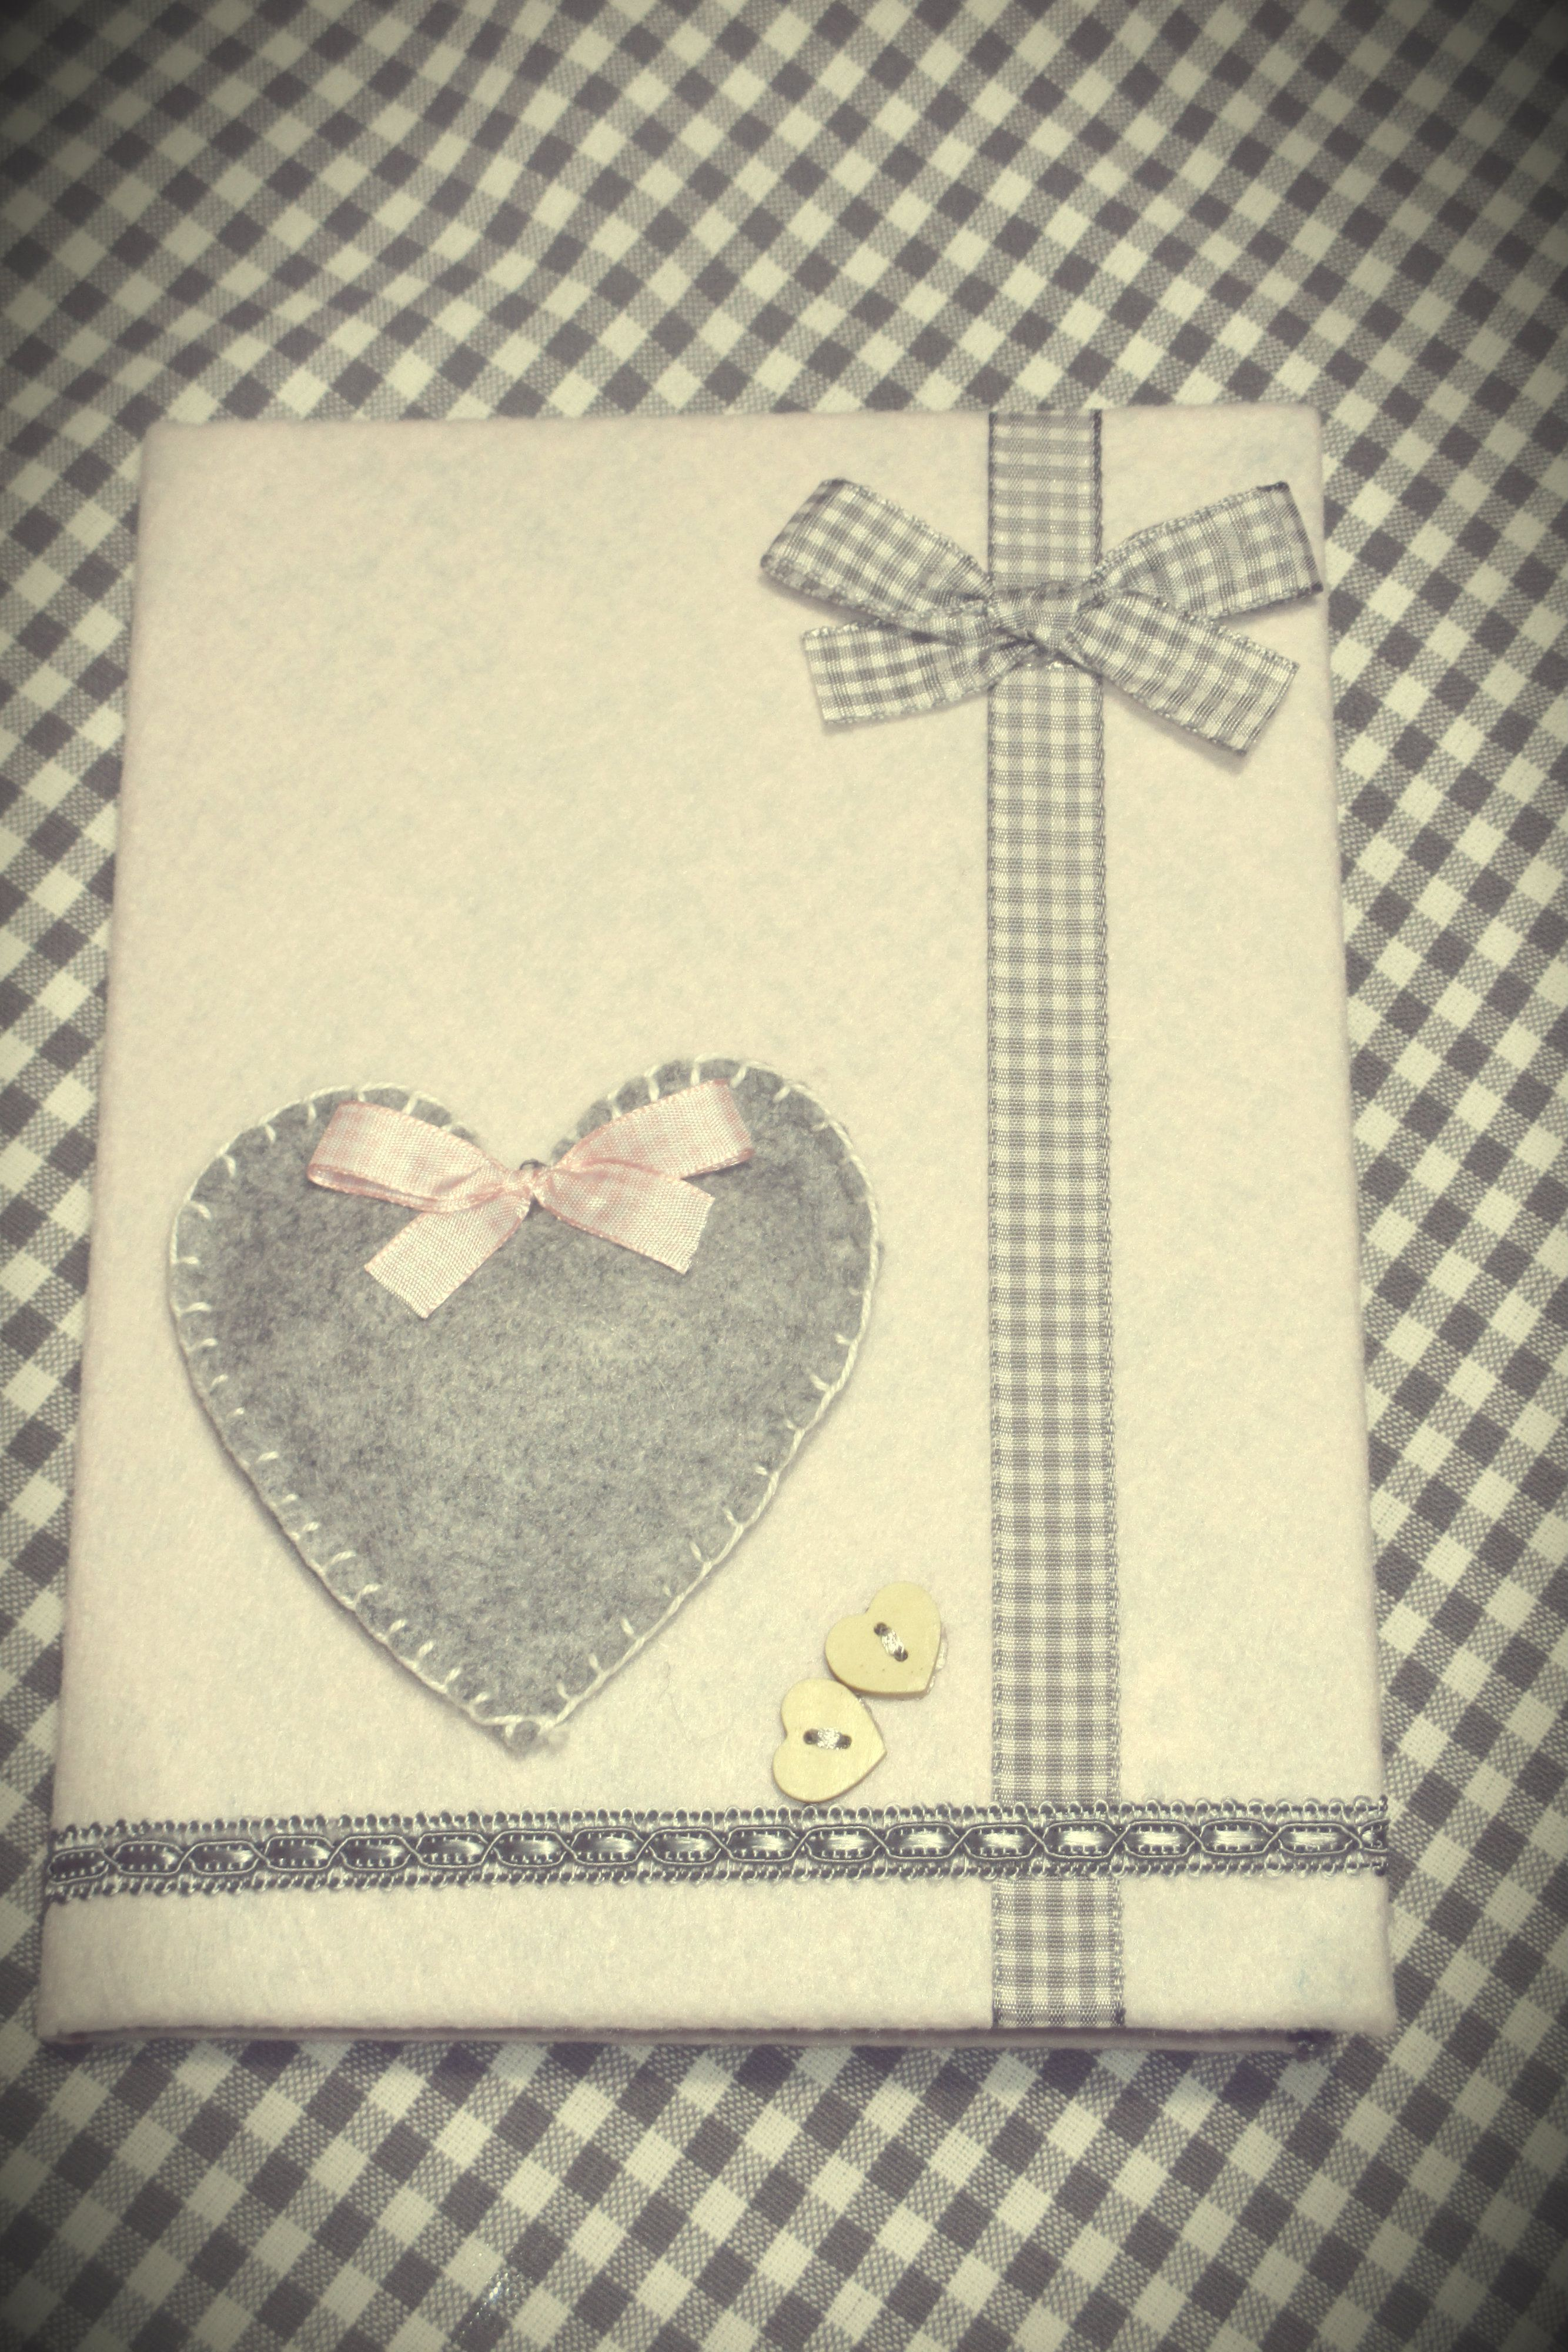 Handmade scrapbooking Agenda find this at https://www.facebook.com/pages/Due-Cuori-handmade/253724874791789